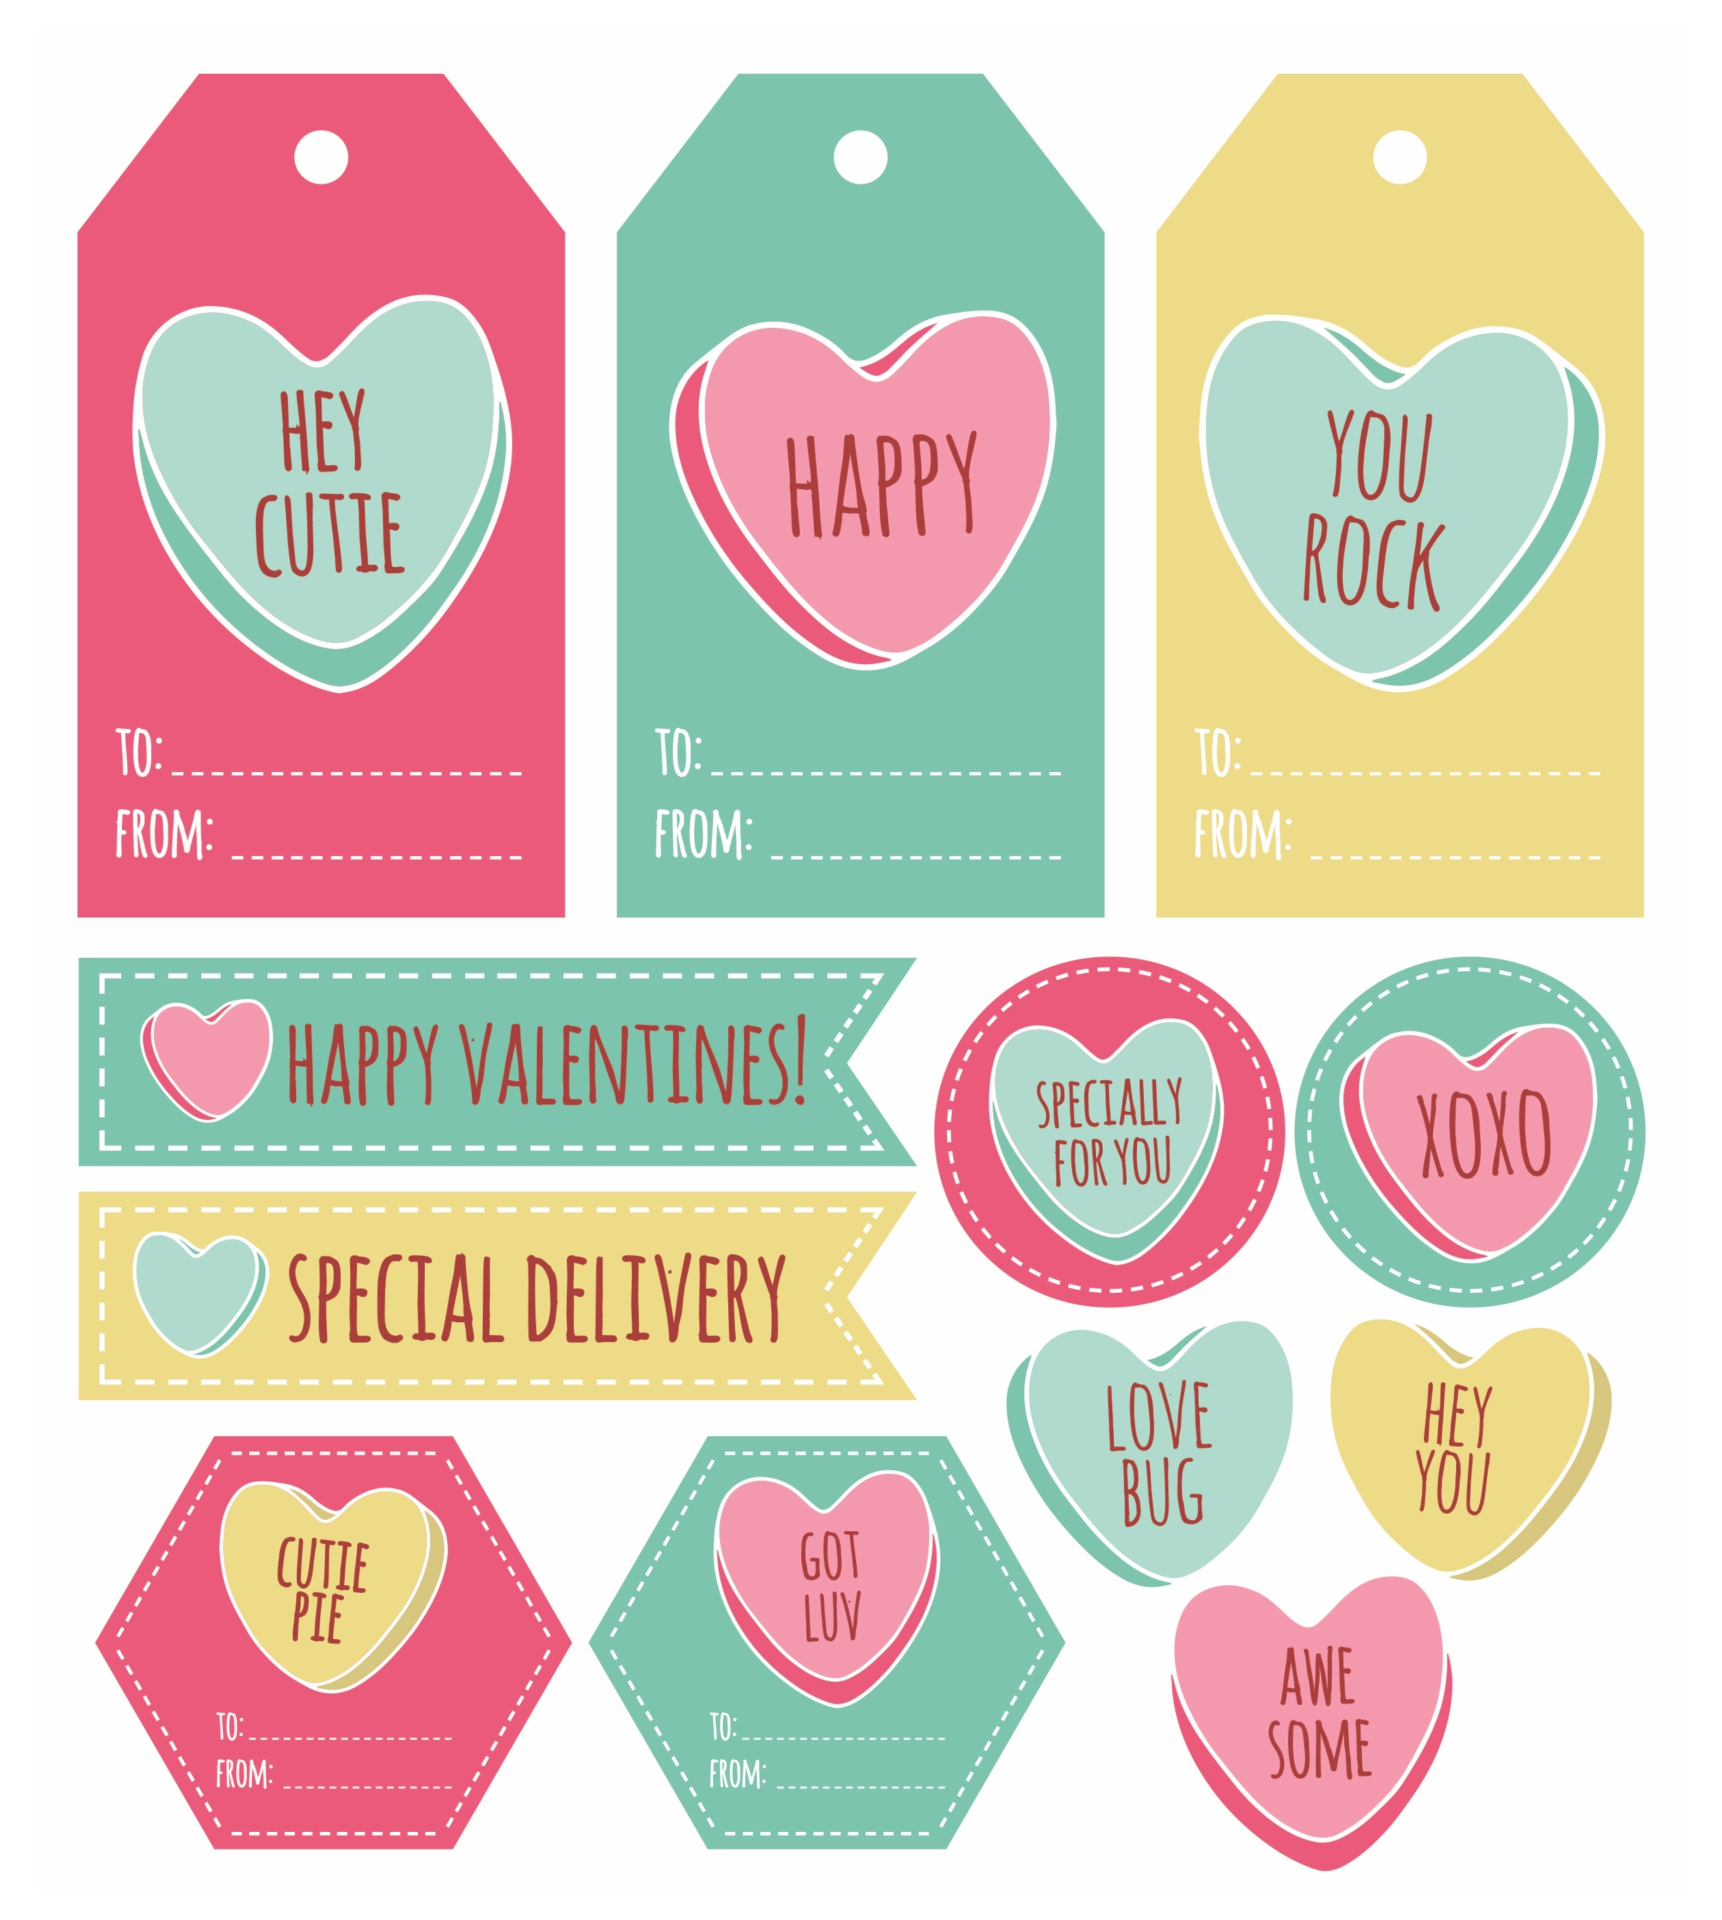 4 Images of Free Printable Gift Tags Valentine's Day